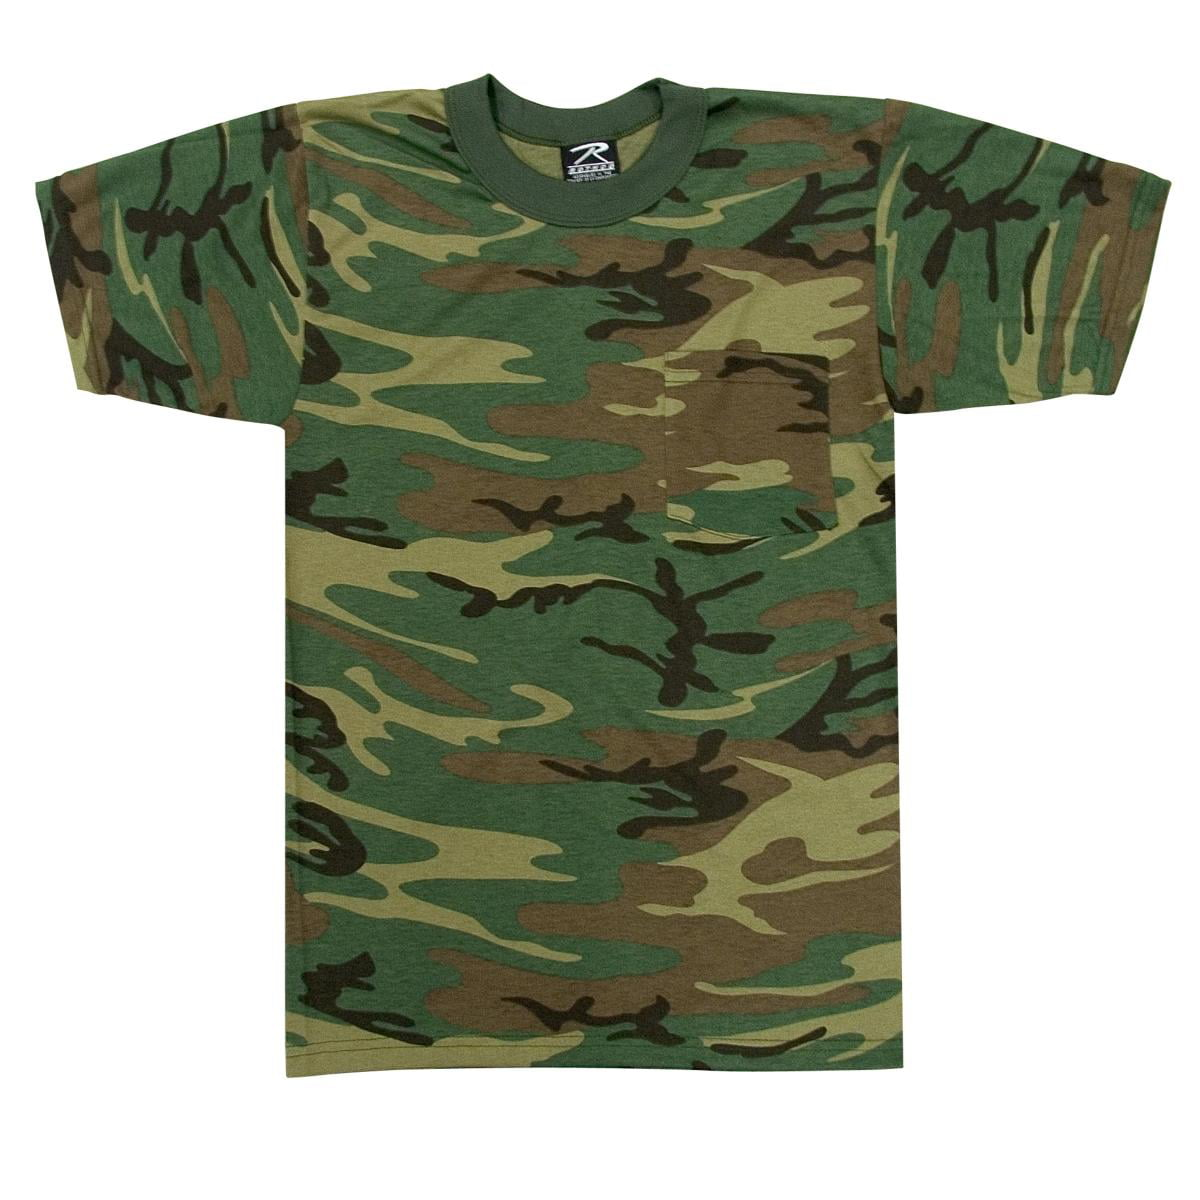 8a5005b7b0a3 Woodland Camouflage T-Shirt with Pocket - Size Large - Walmart.com